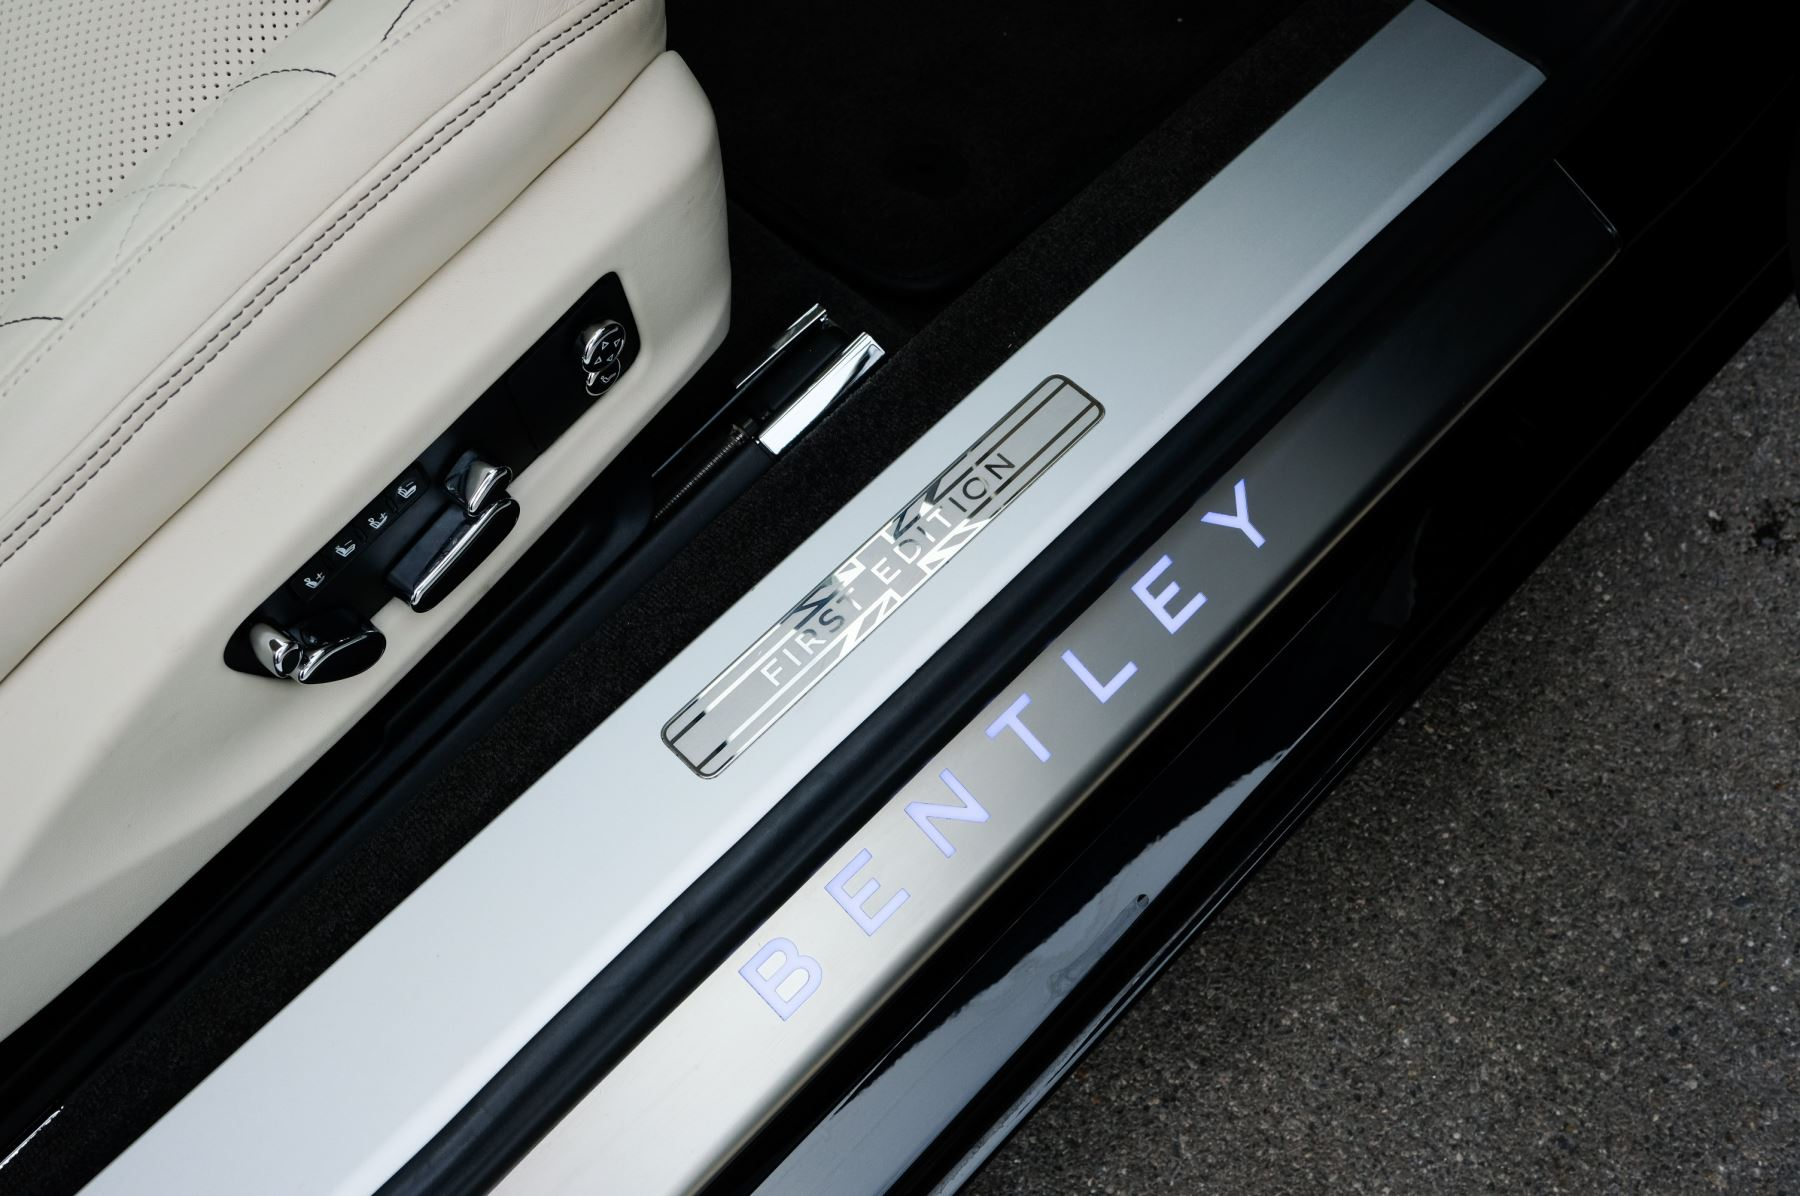 Bentley Continental GT 6.0 W12 1st Edition - Comfort Seating - Touring Specification image 18